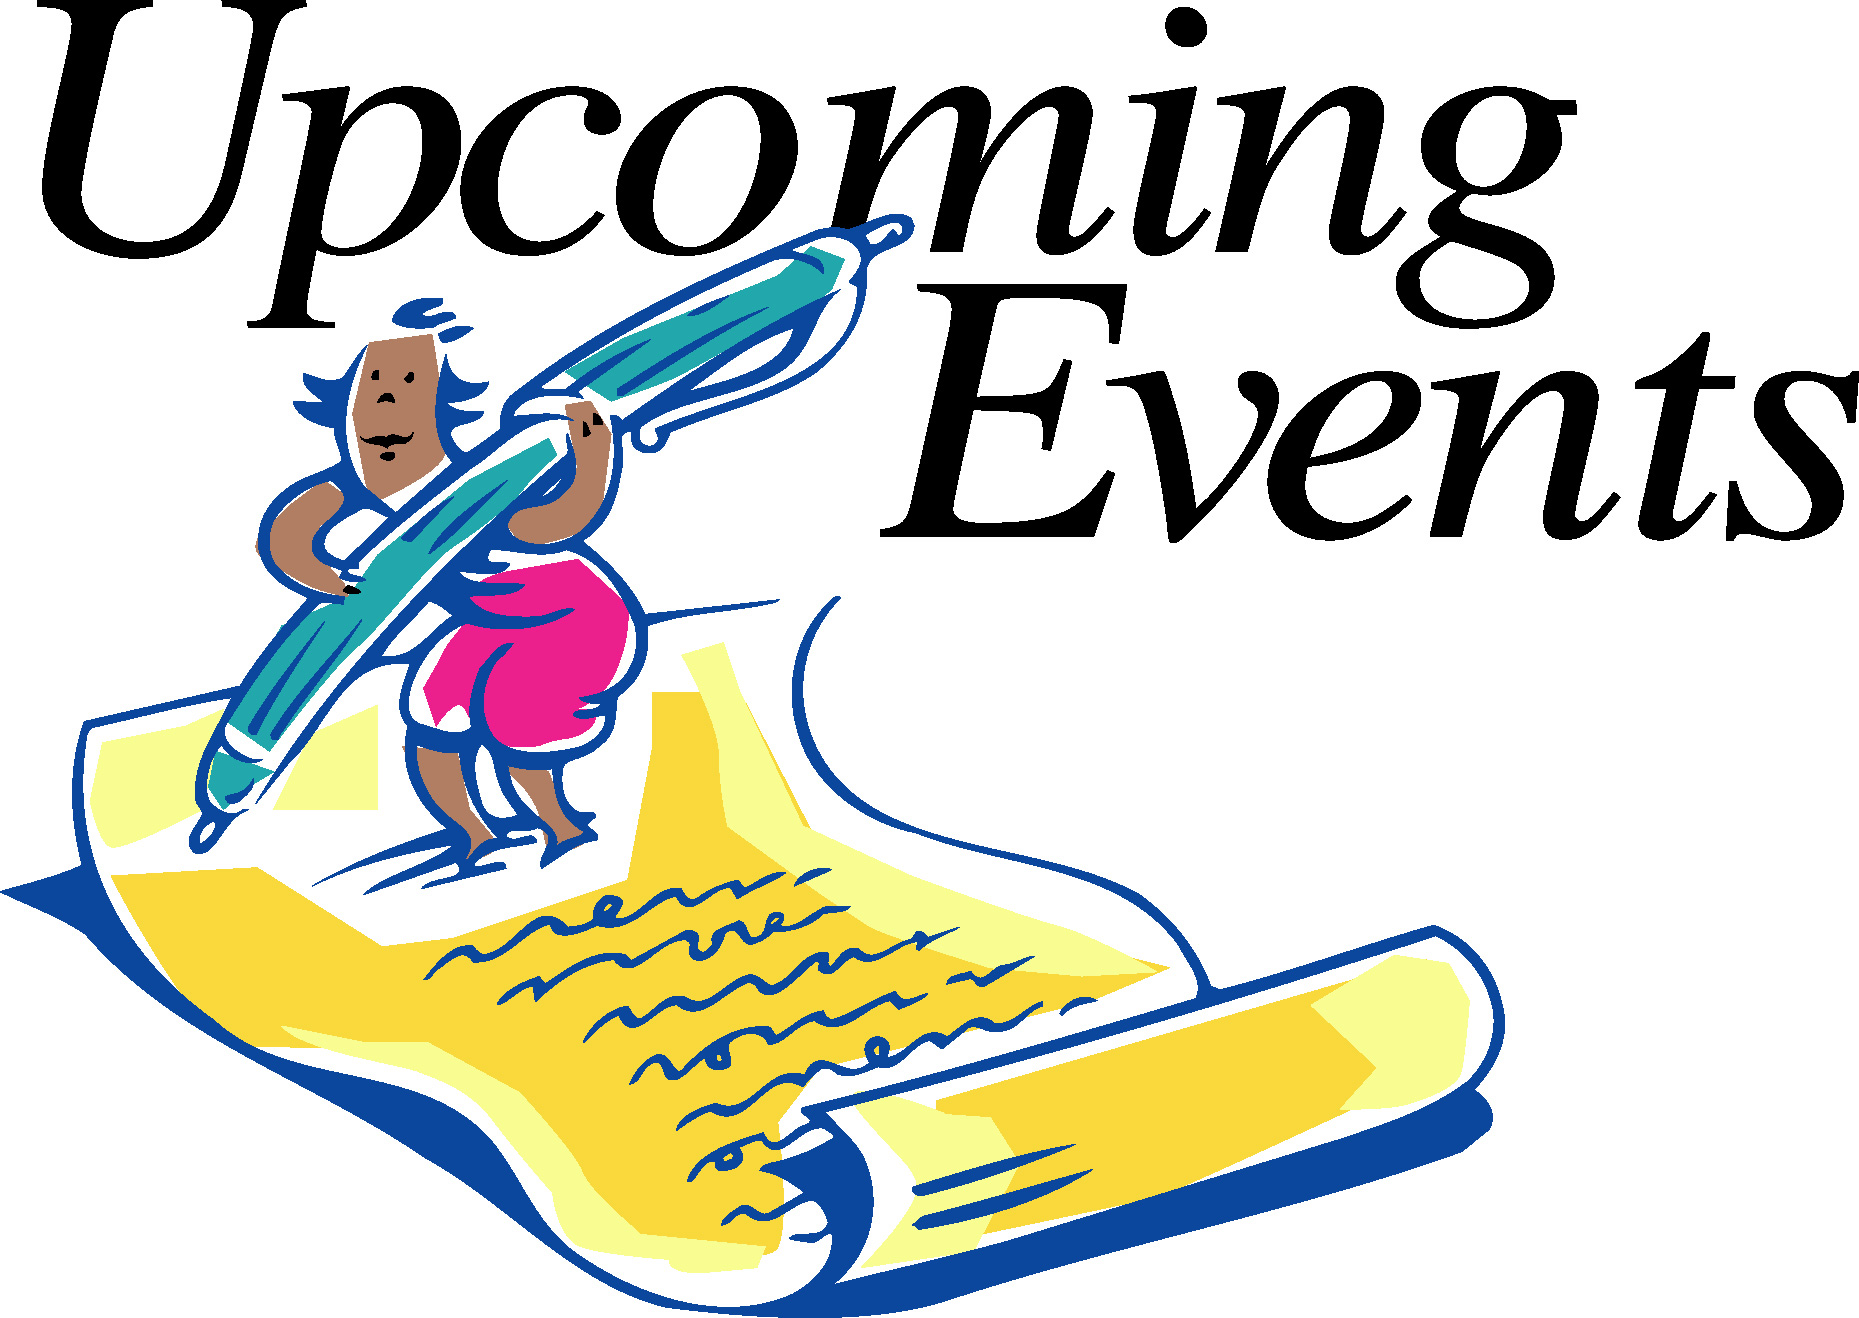 1859x1318 Upcoming Events Clip Art Many Interesting Cliparts